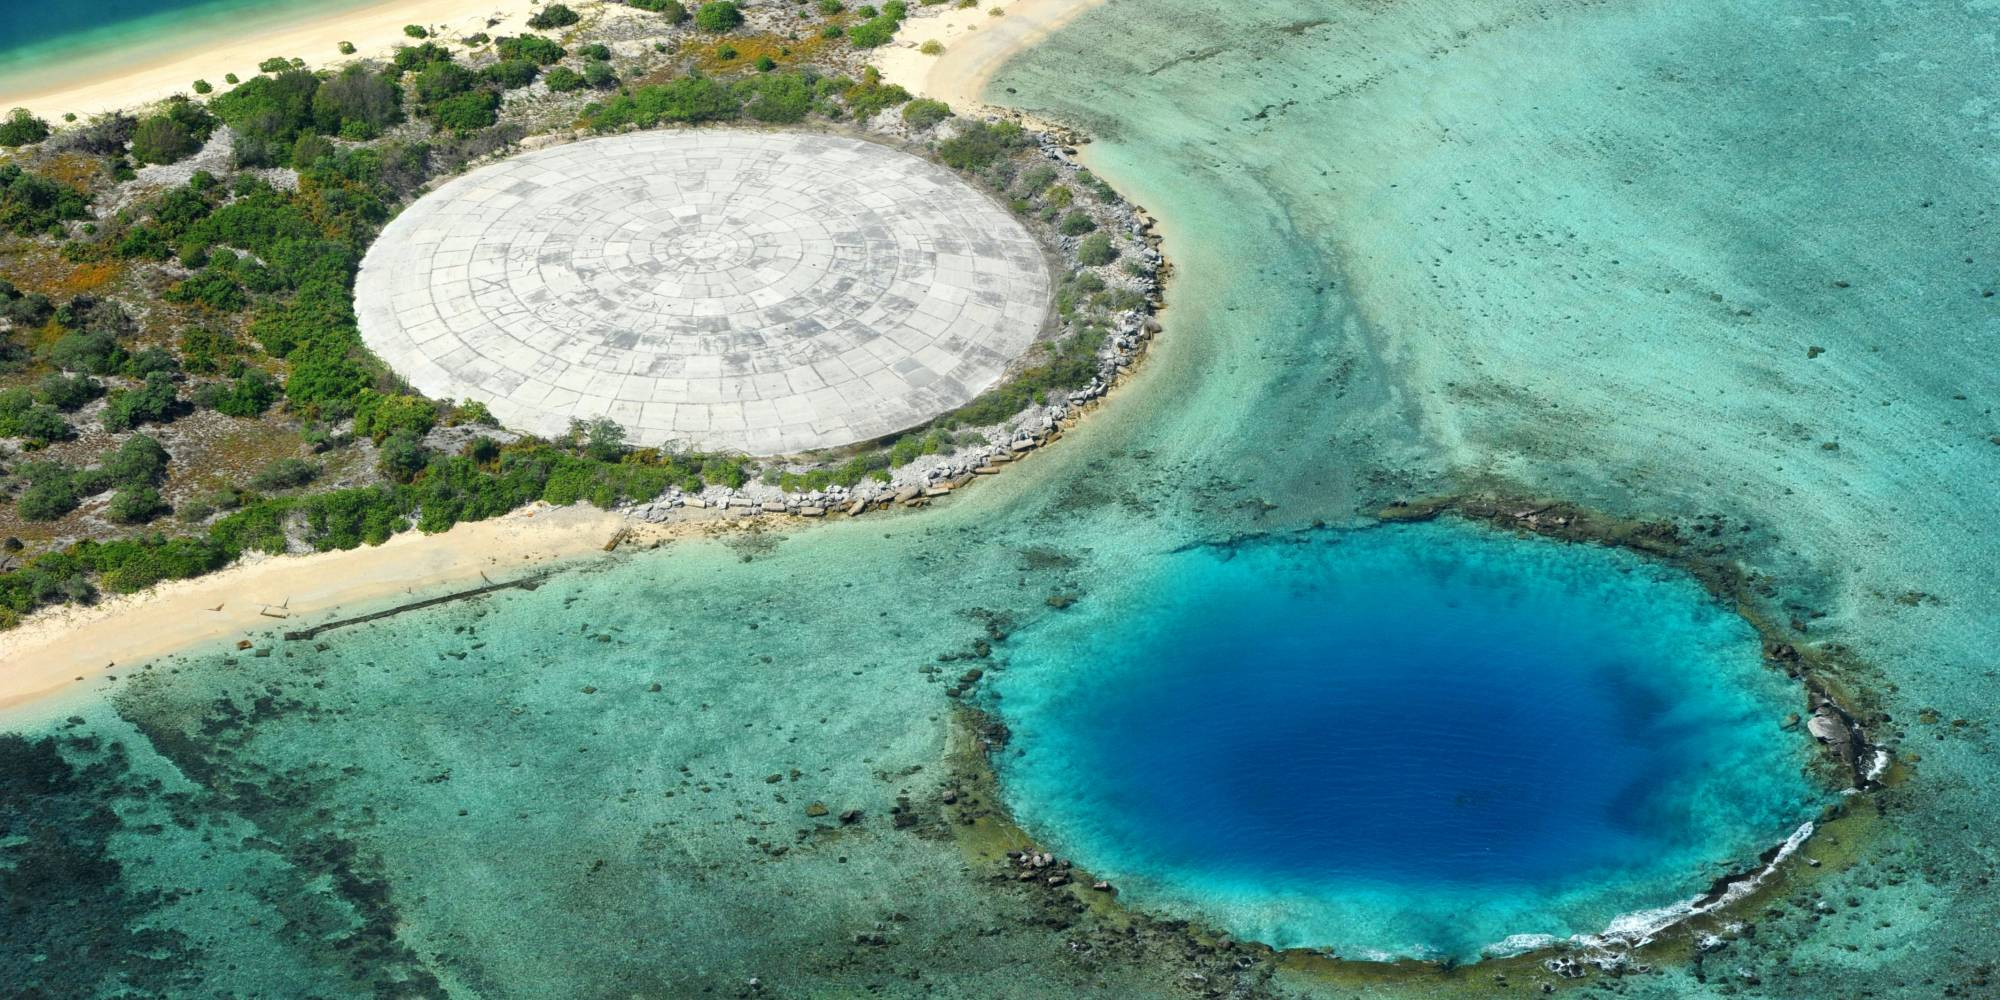 A crater covered by concrete to keep decontaminated soil (L) and another crater, both created by nuclear testingin Enewetak Atoll, Marshall Islands.